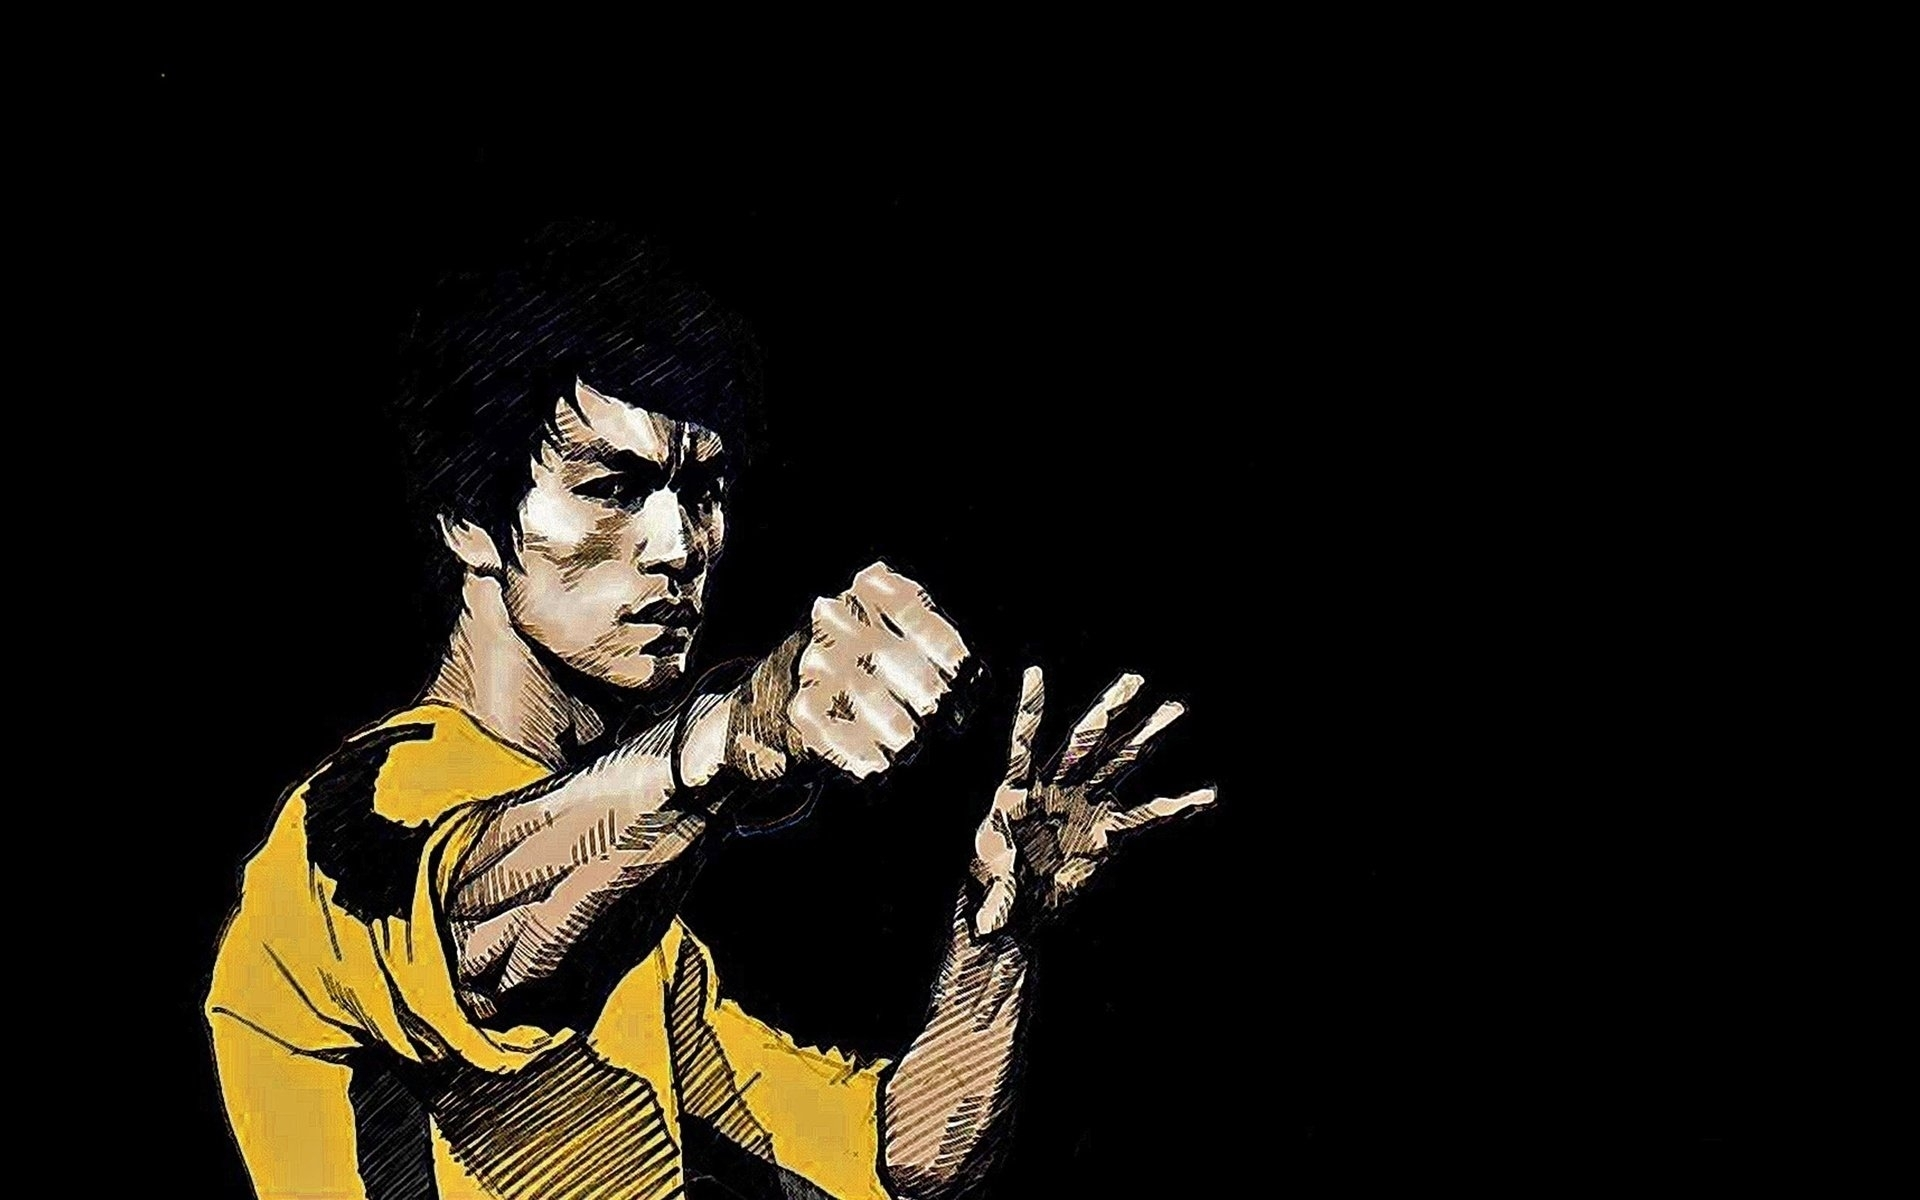 46 bruce lee hd wallpapers | background images - wallpaper abyss